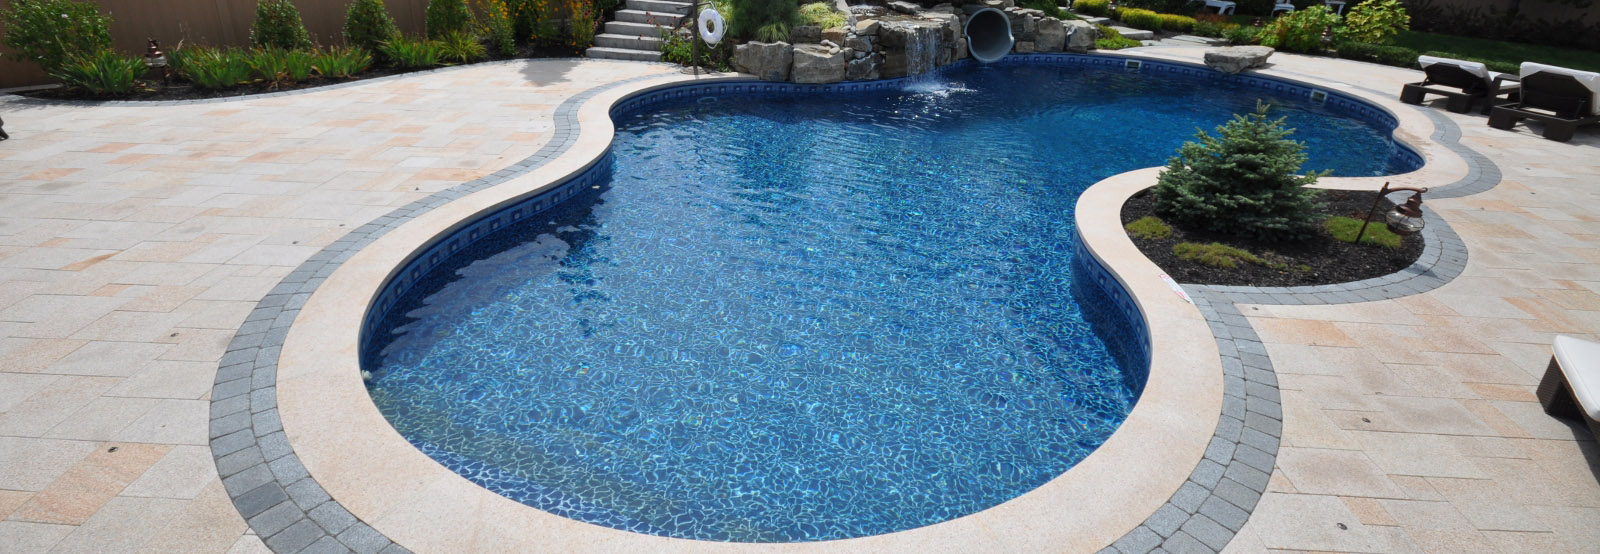 Gunite Swimming Pool Installation and Construction Beaumont TX